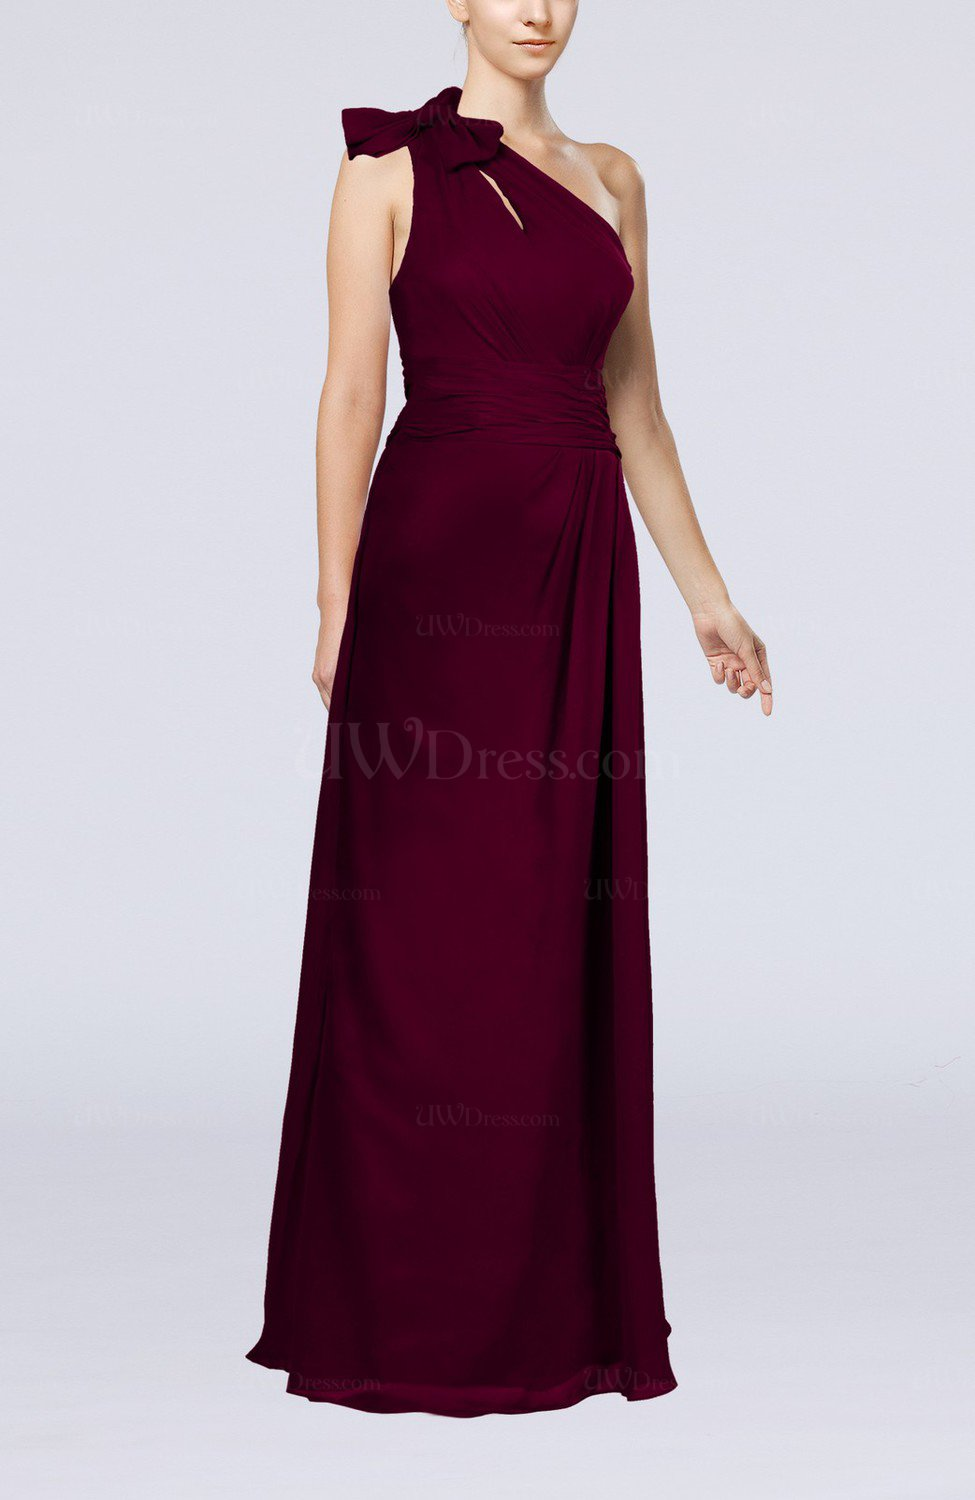 66effeb2b3 Raspberry Elegant Asymmetric Neckline Zip up Chiffon Floor Length Mother of  the Bride Dresses (Style D50567)